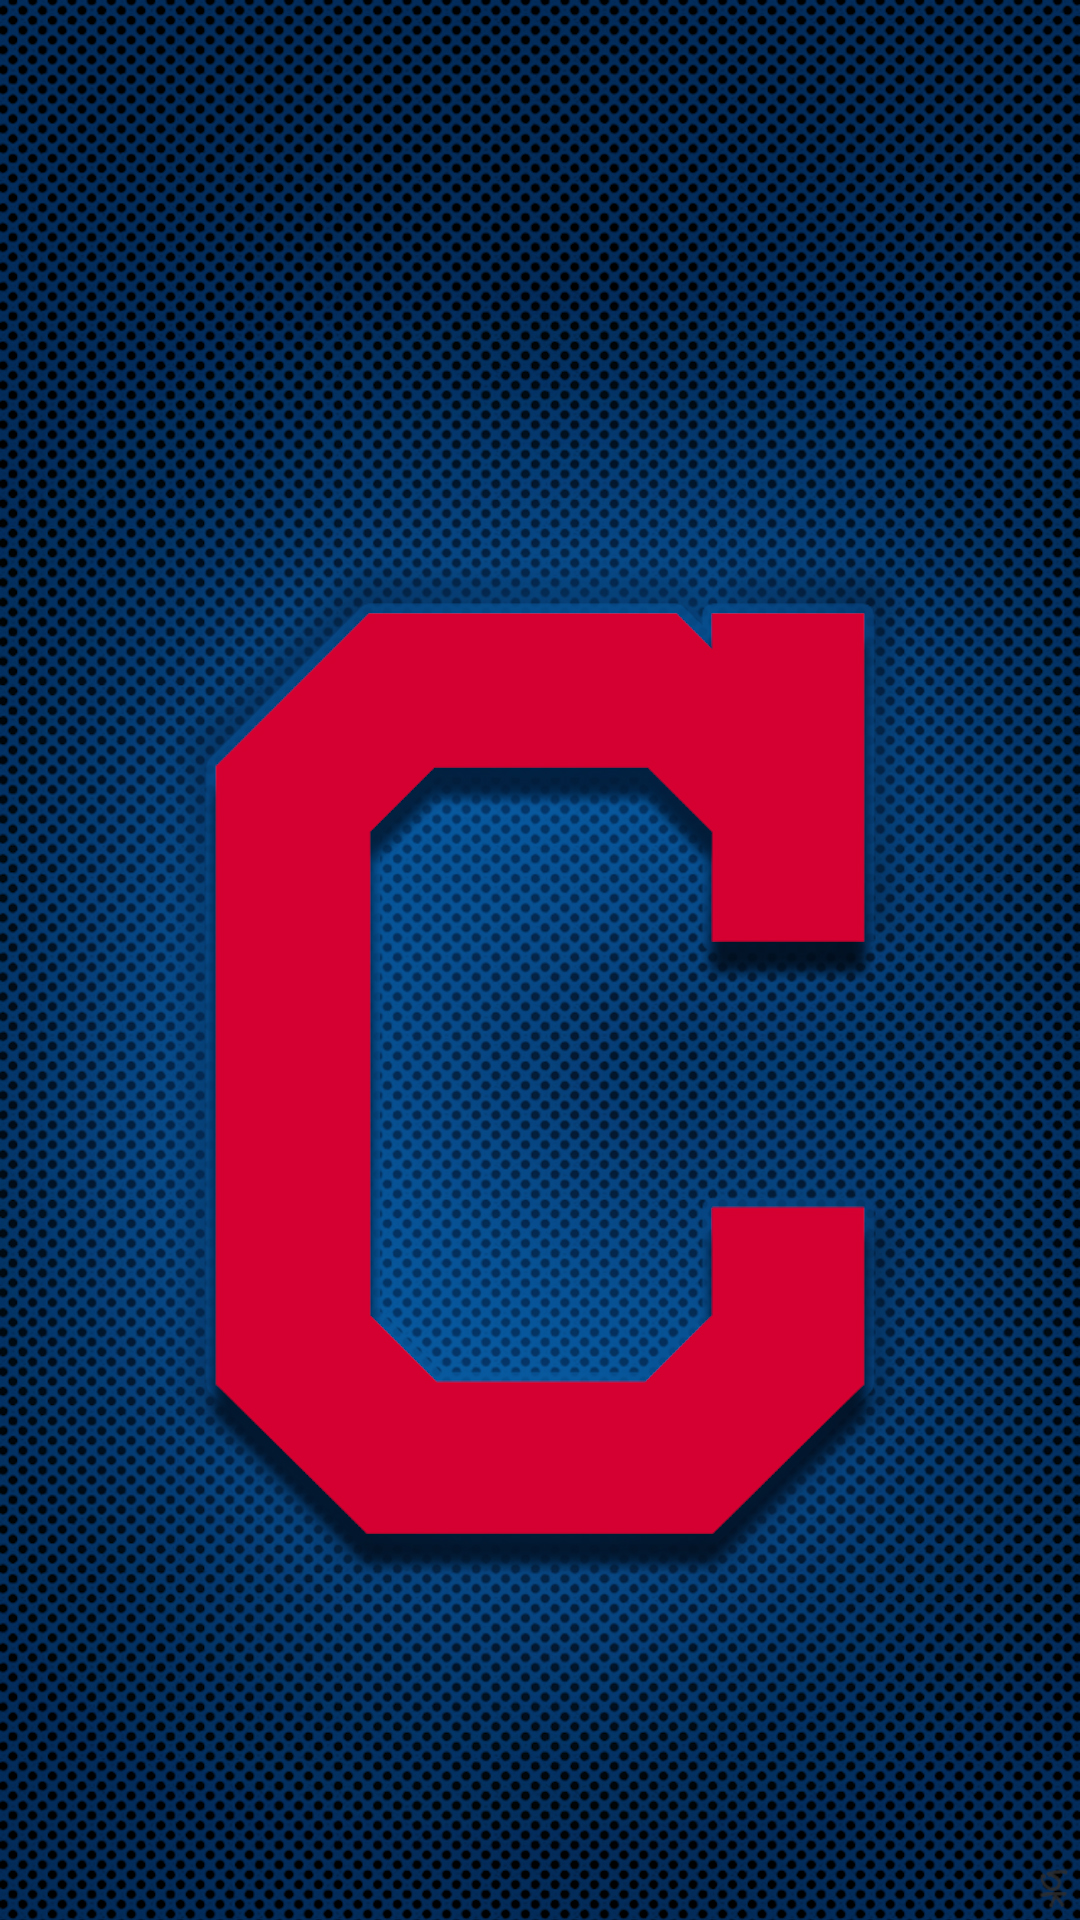 Iphone iphone 6 sports wallpaper thread page 150 macrumors cleveland indiansg biocorpaavc Choice Image